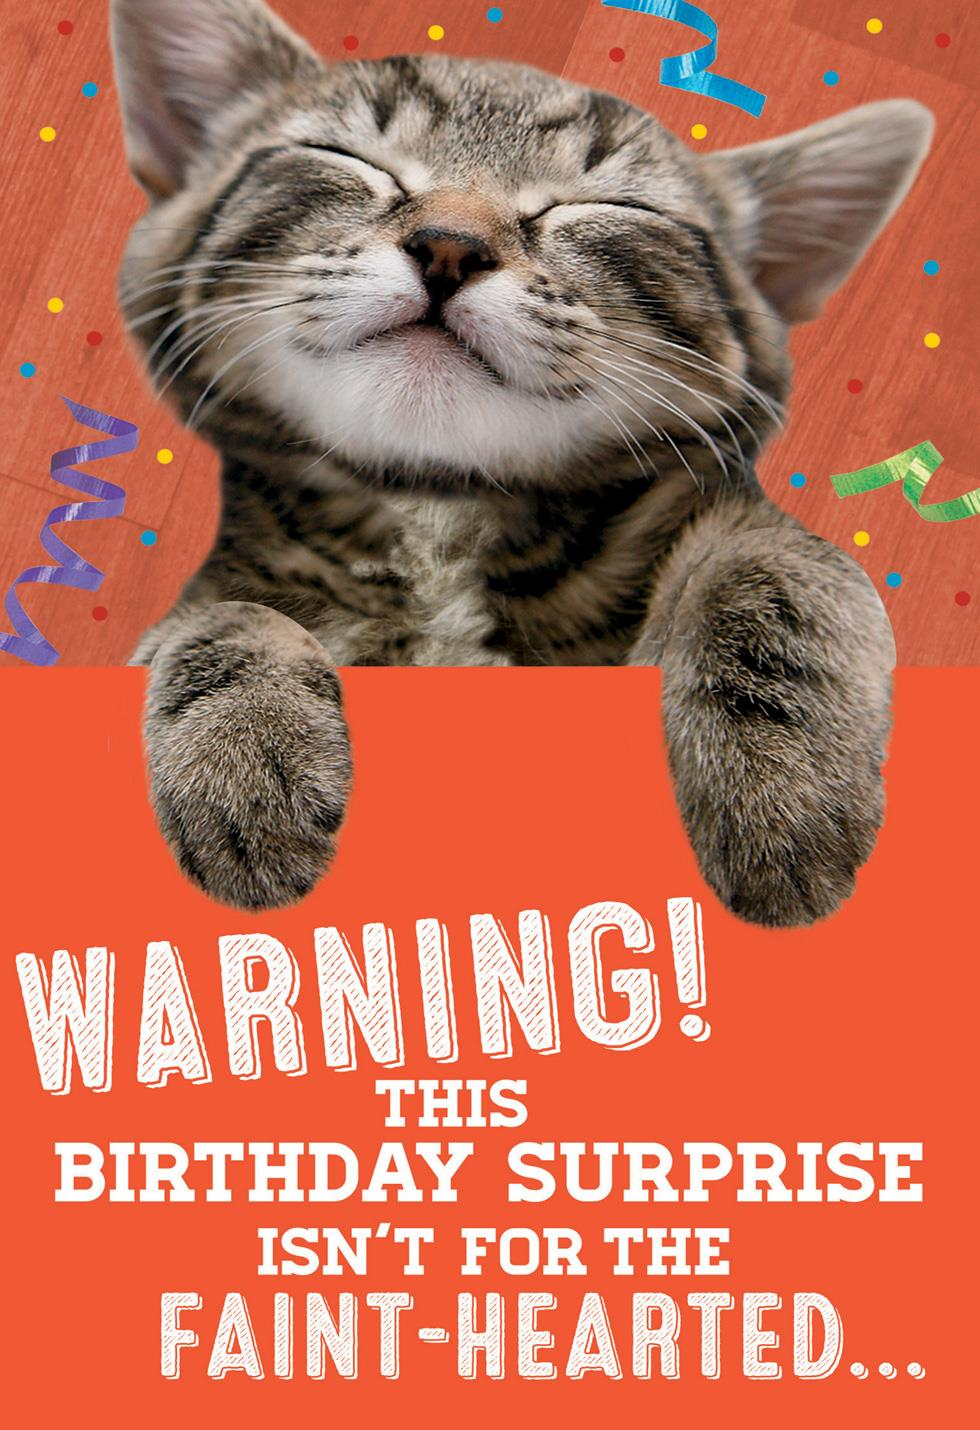 Kitten Surprise Birthday Card With Sound And Motion